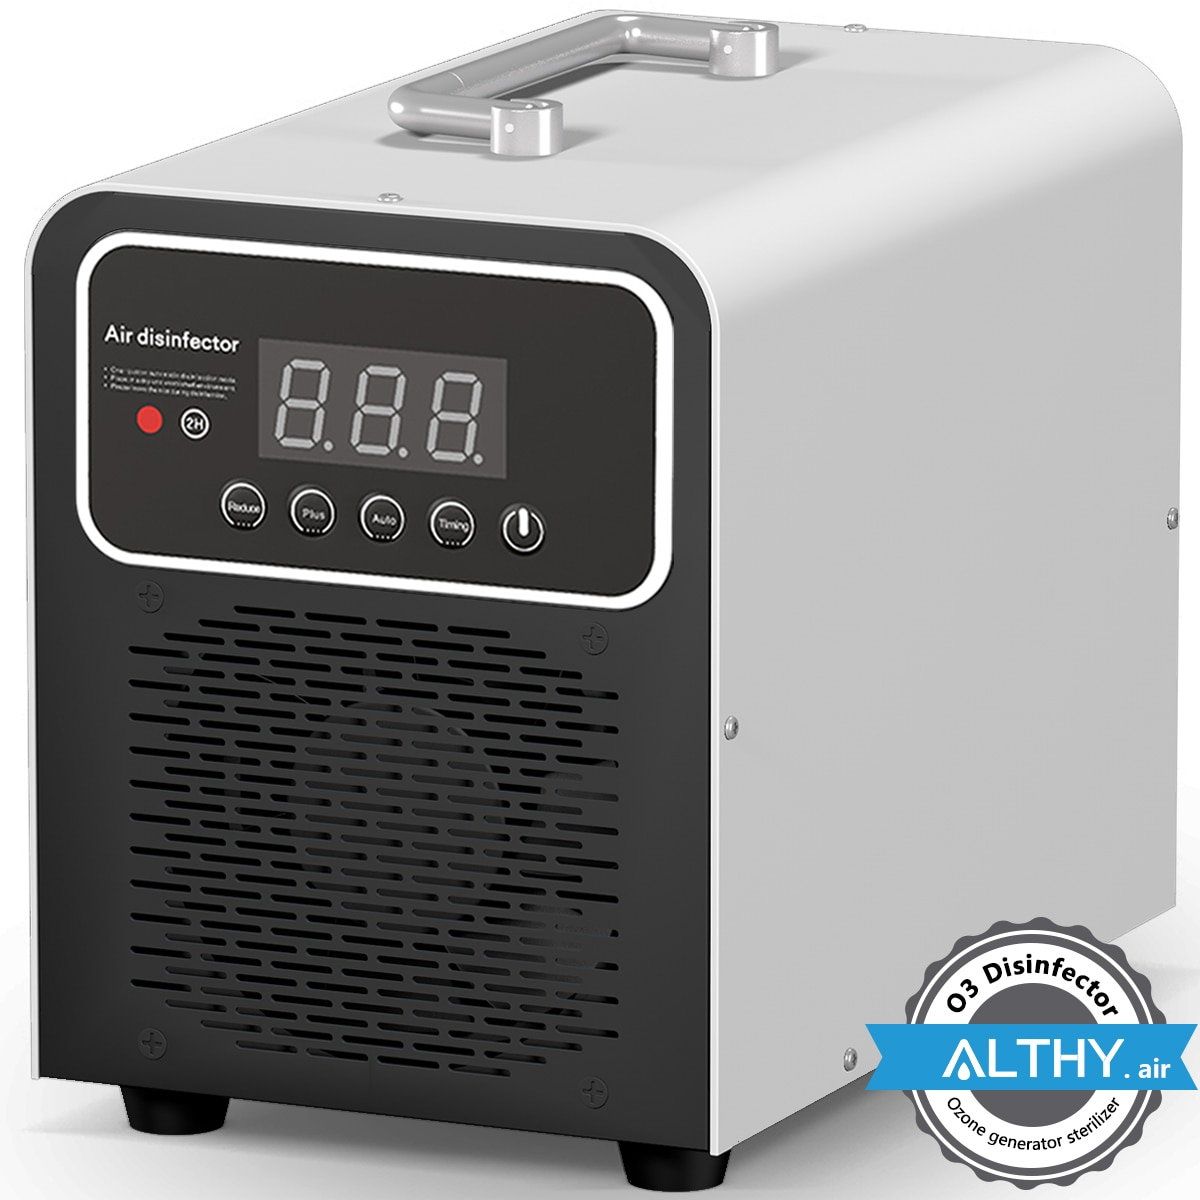 ALTHY Ozone Generator Air Purifier Cleaner Disinfector O3 Ozonator Deodorizer -  5,000mg/hr Timer - Portable car home mini car ozone air purifier home ozone generator car air cleaner odor remover o3 generator eliminator deodorization sterilizer